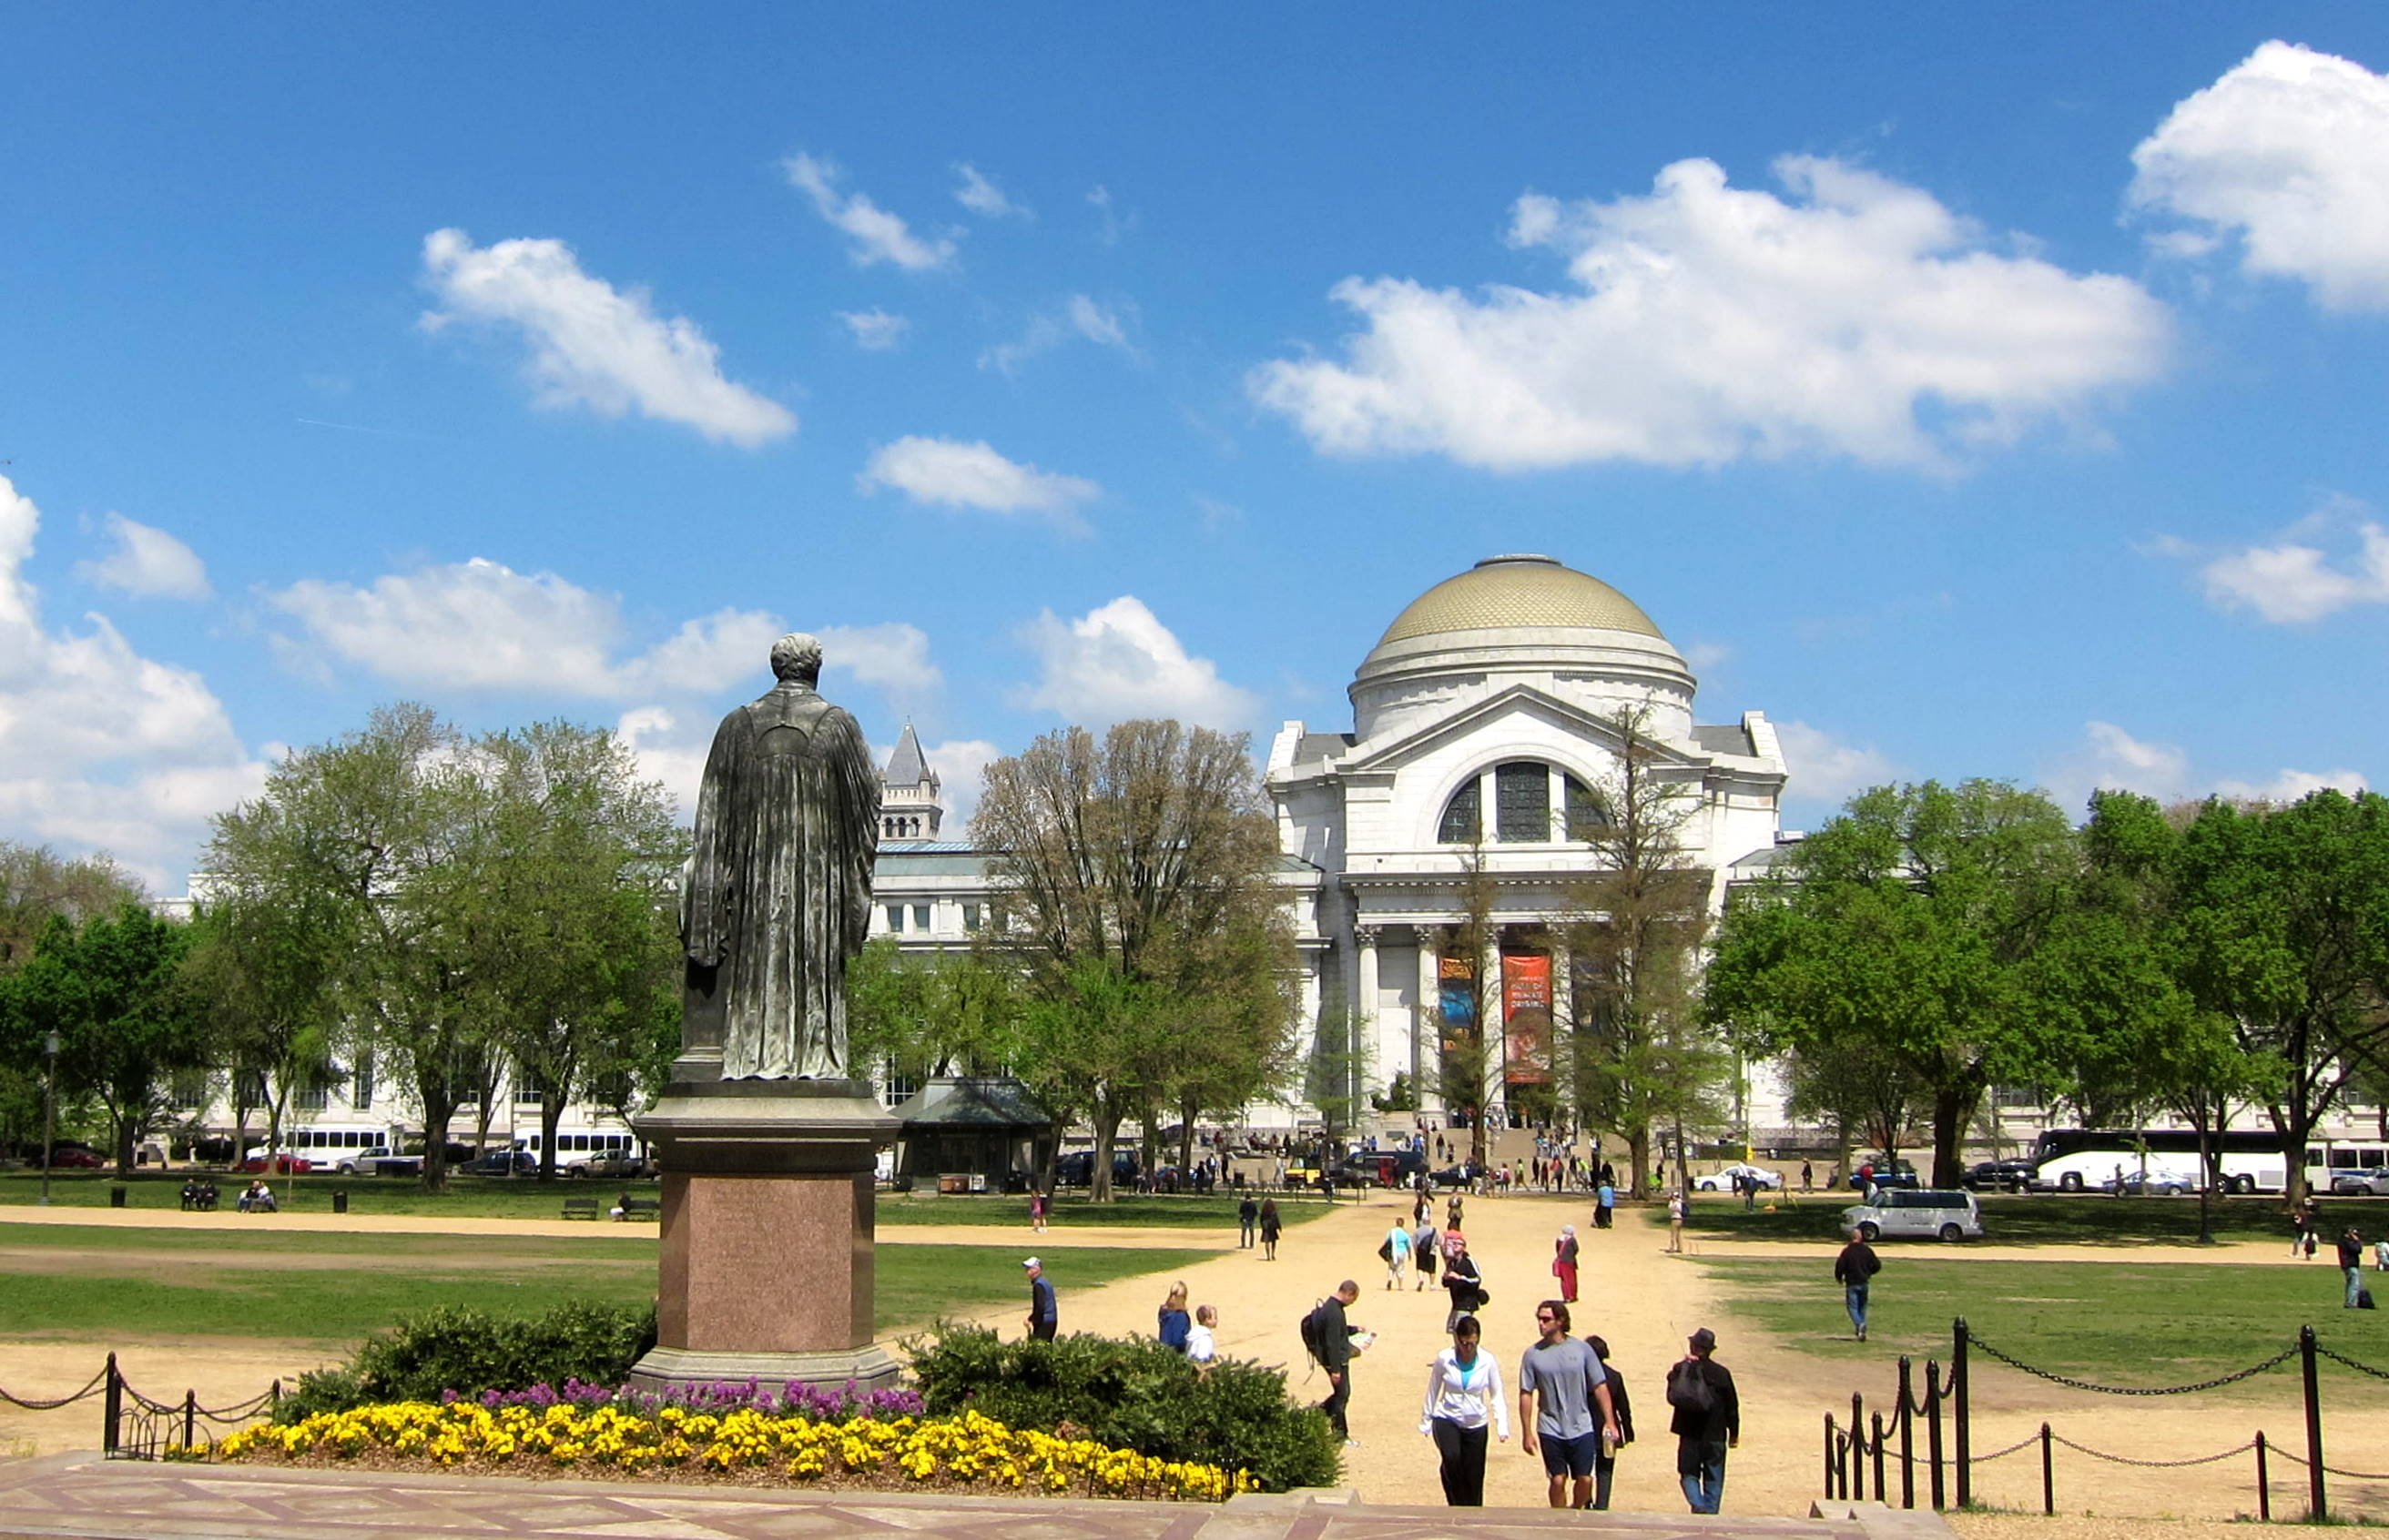 Where To Park For Smithsonian Museum Of Natural History